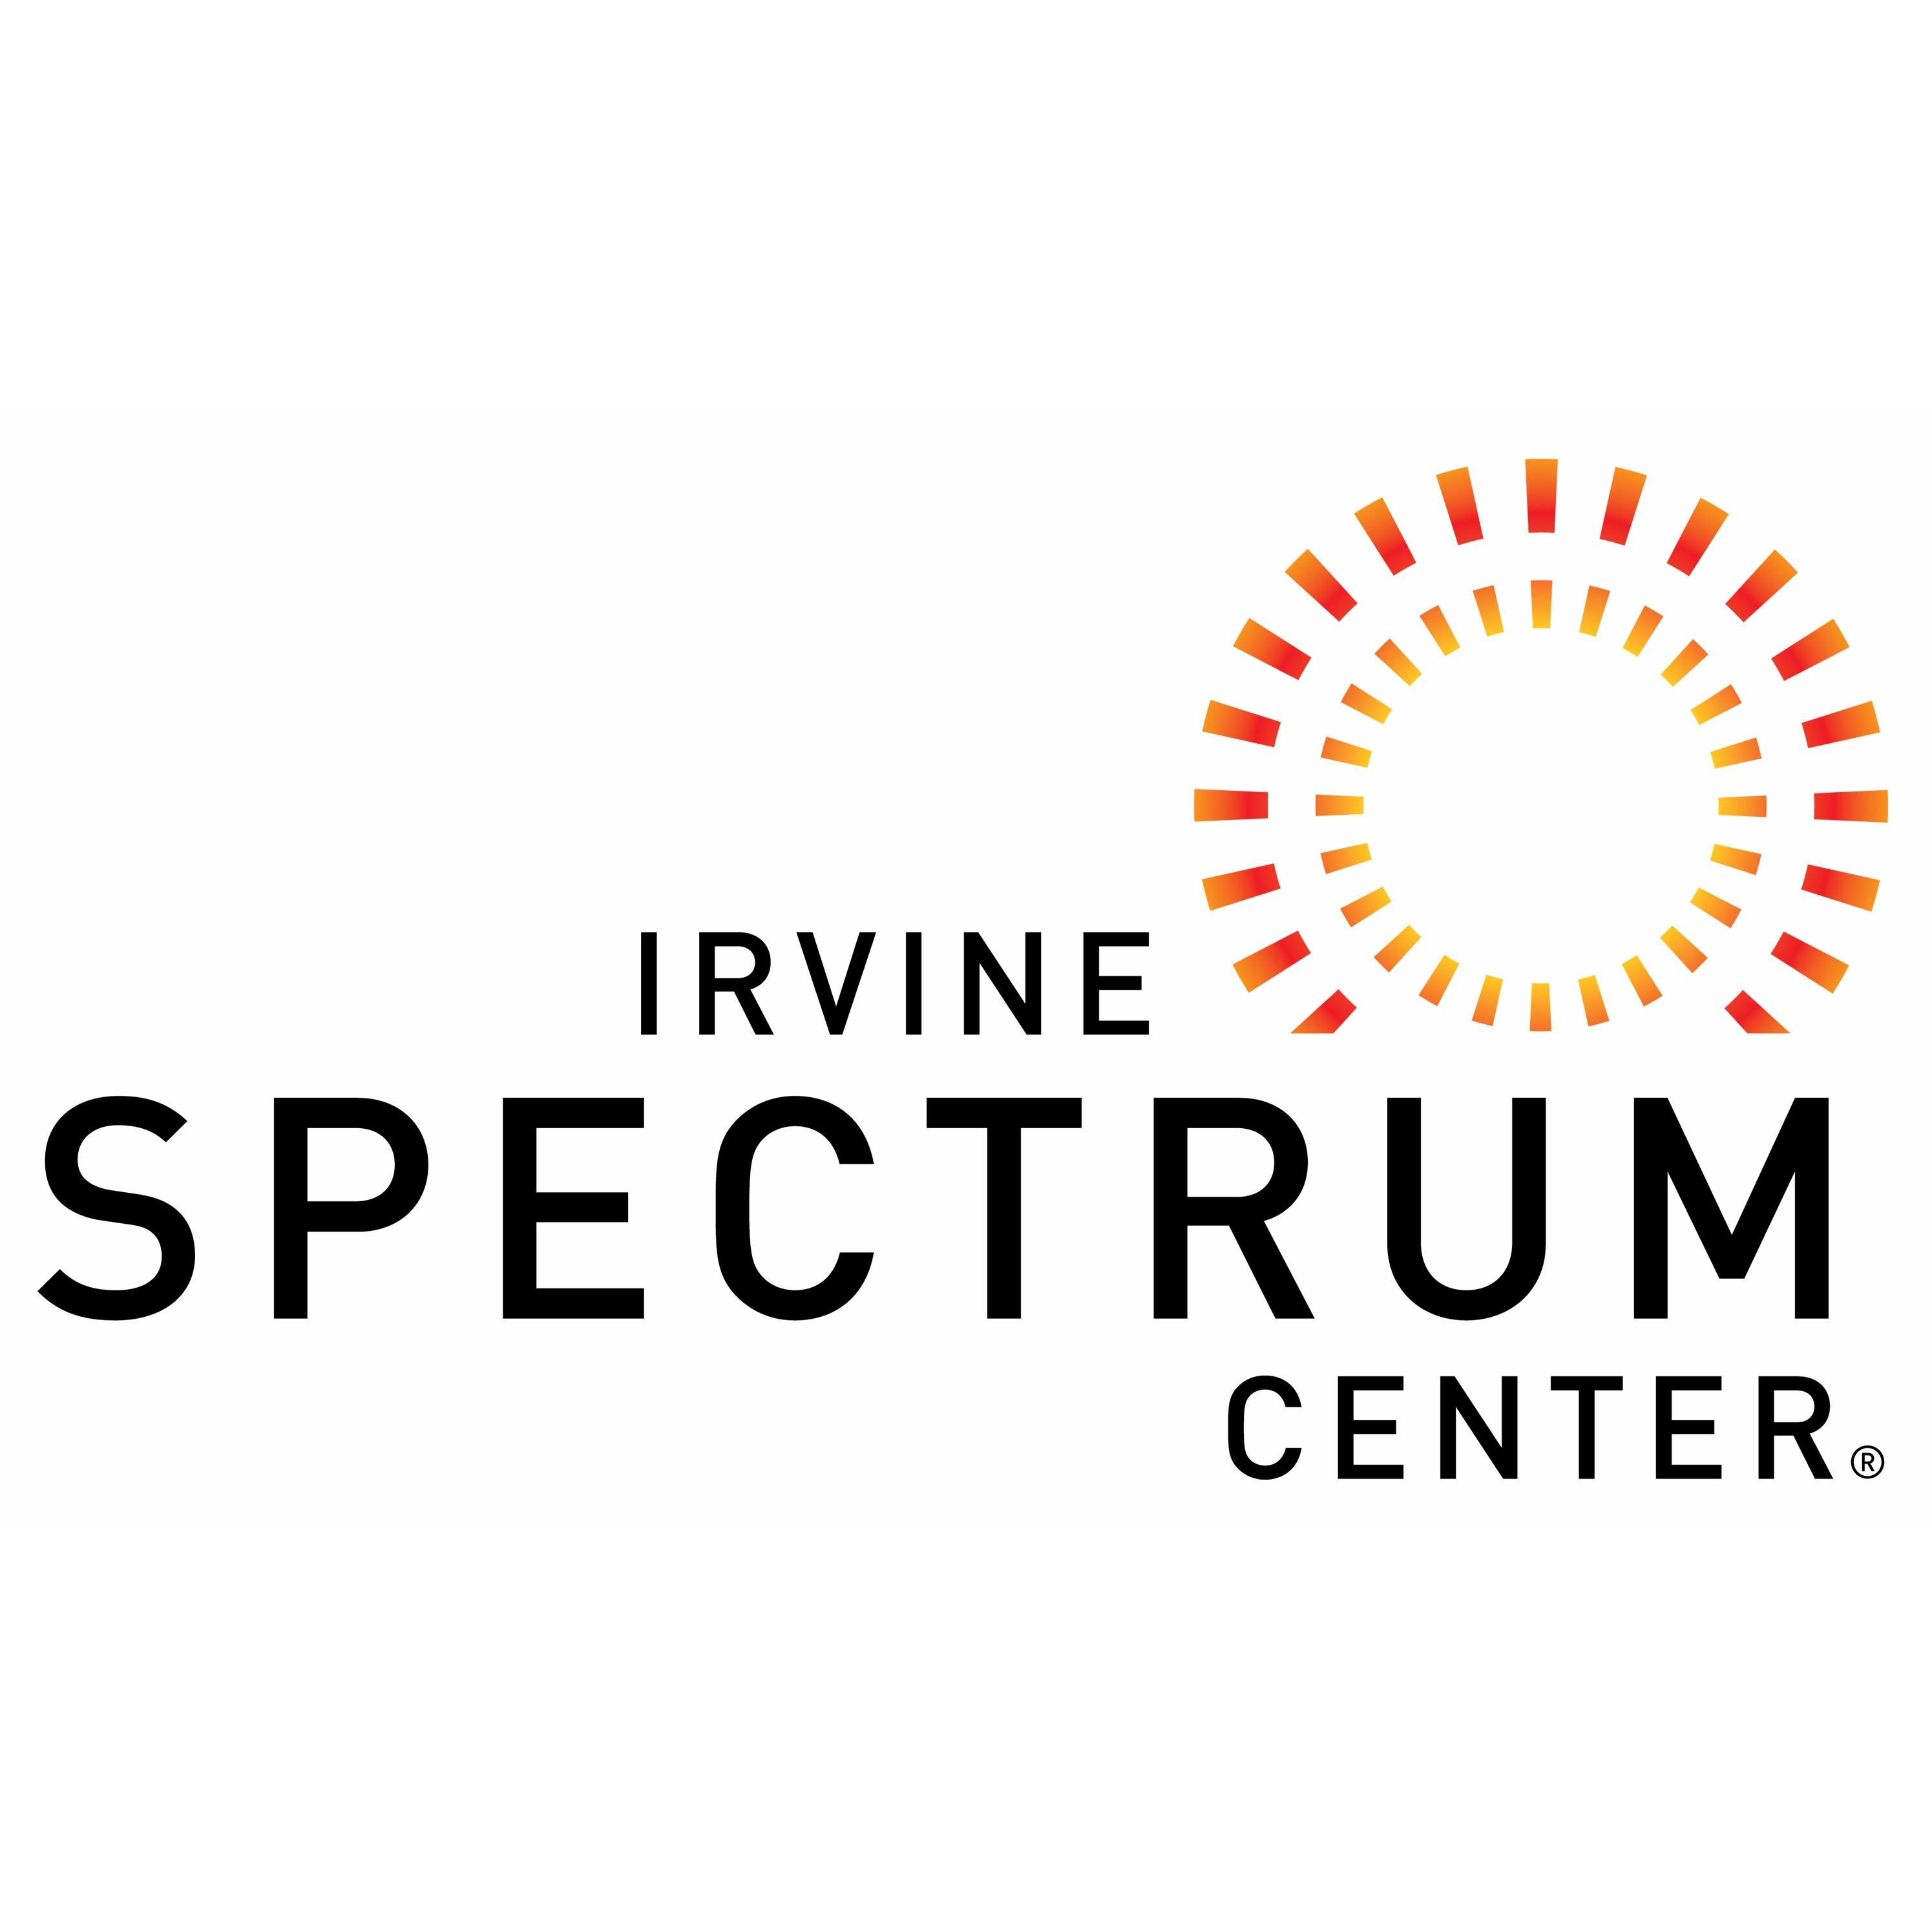 Irvine Spectrum Center - Shopping, Dining and Entertainment